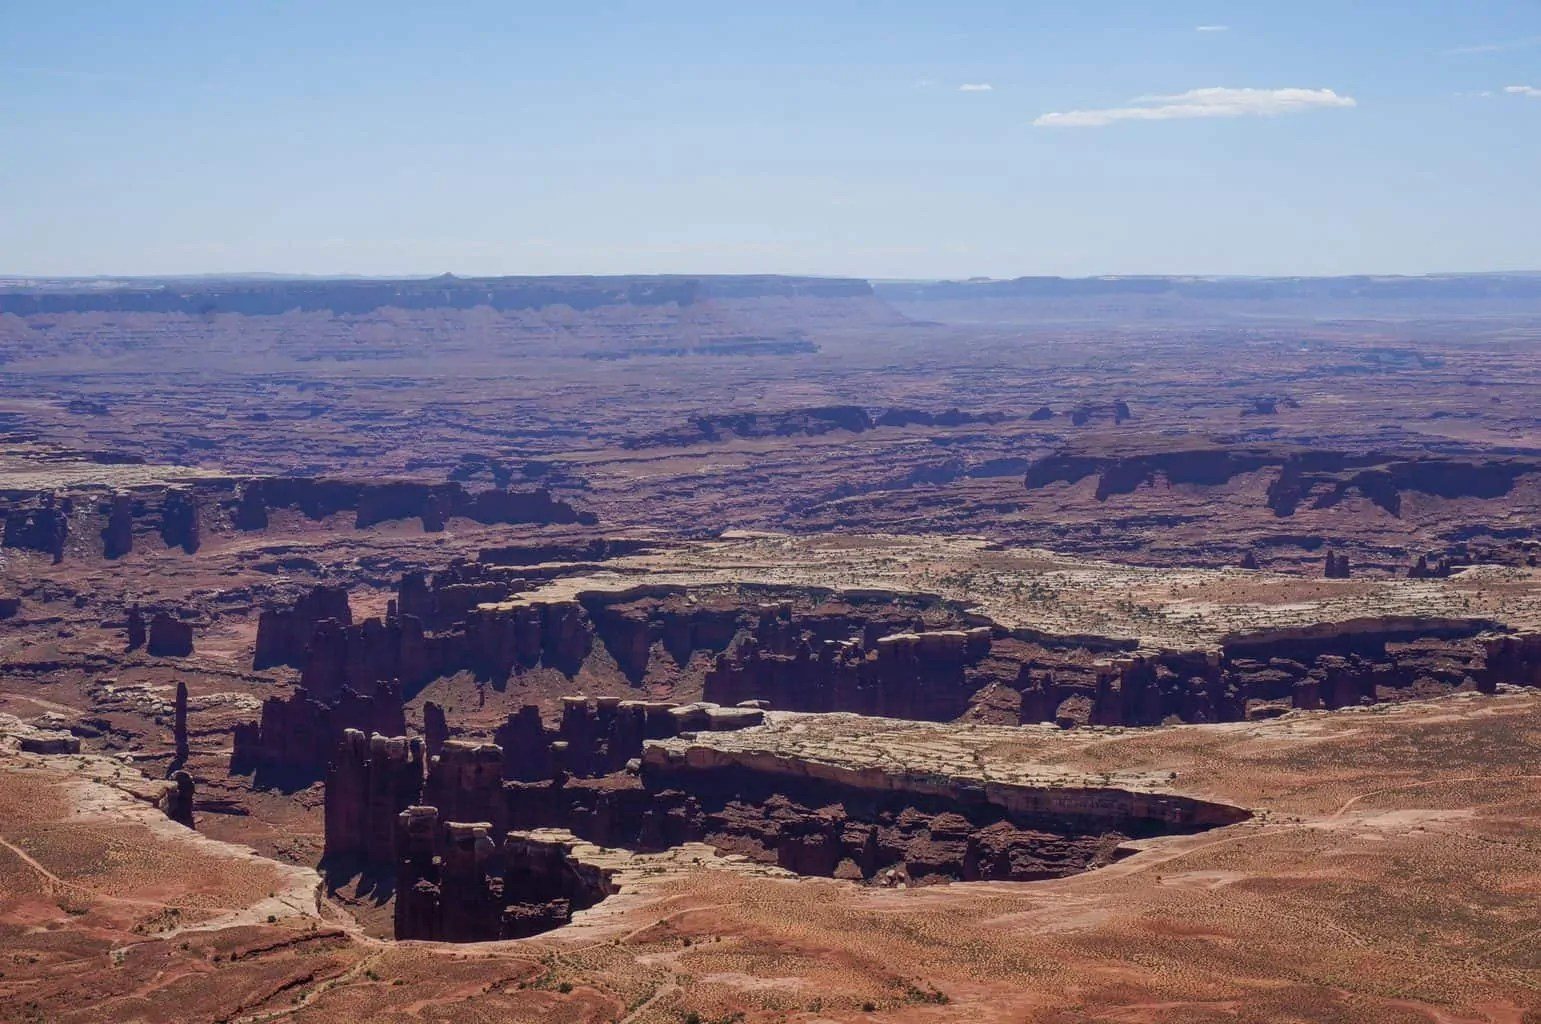 The Best Things to do in Moab: 9 Adventurous Activities